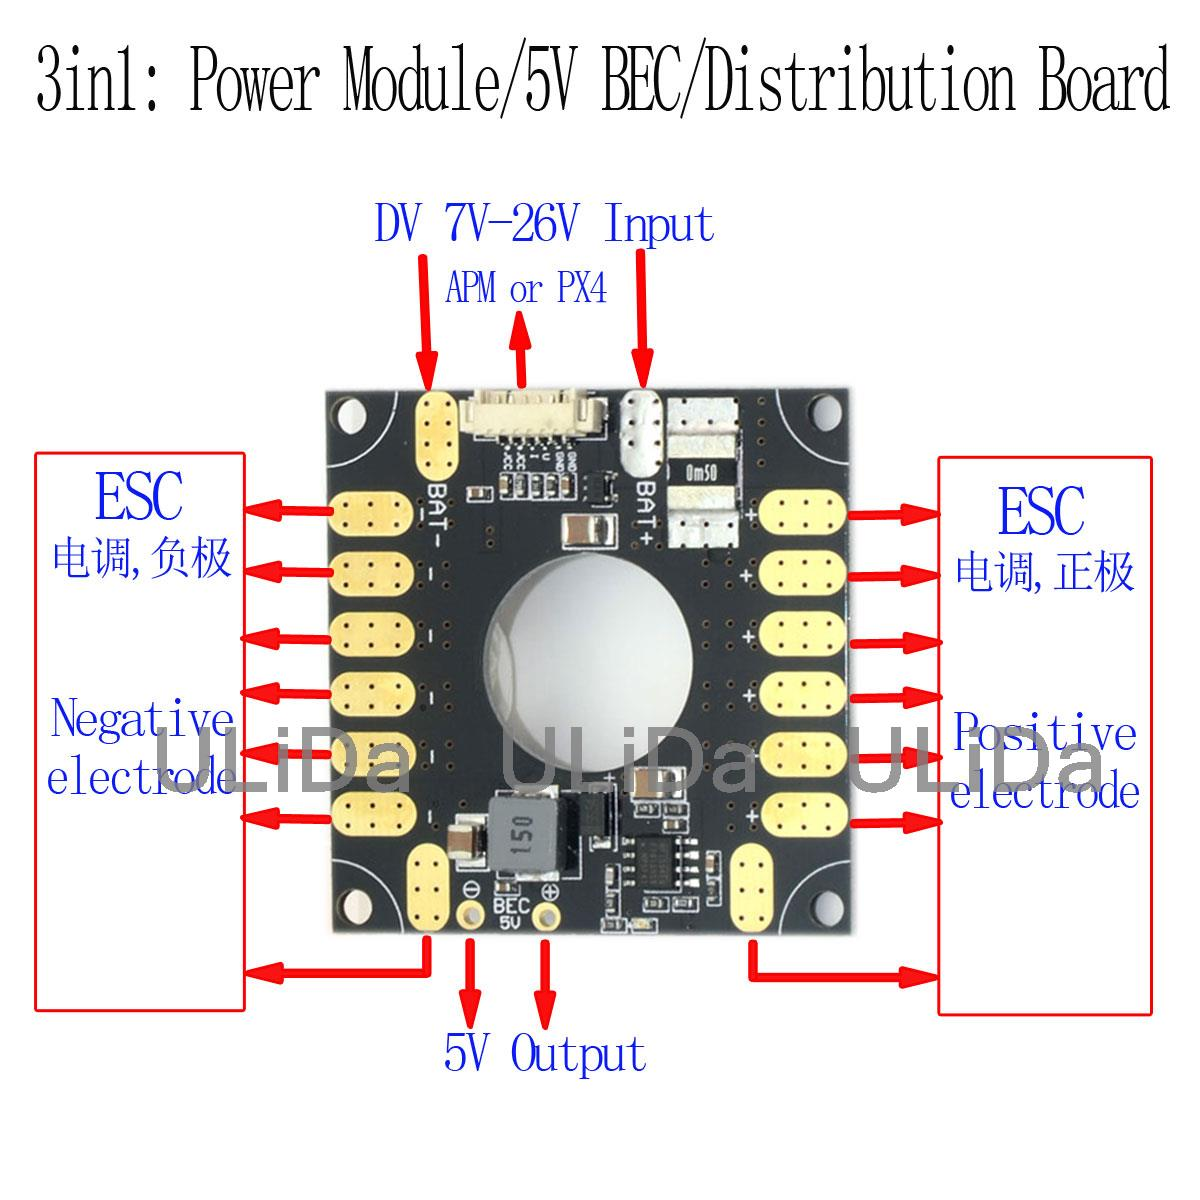 3DR Power Module ESC Distribution Board 5V BEC 3 in 1 for APM and